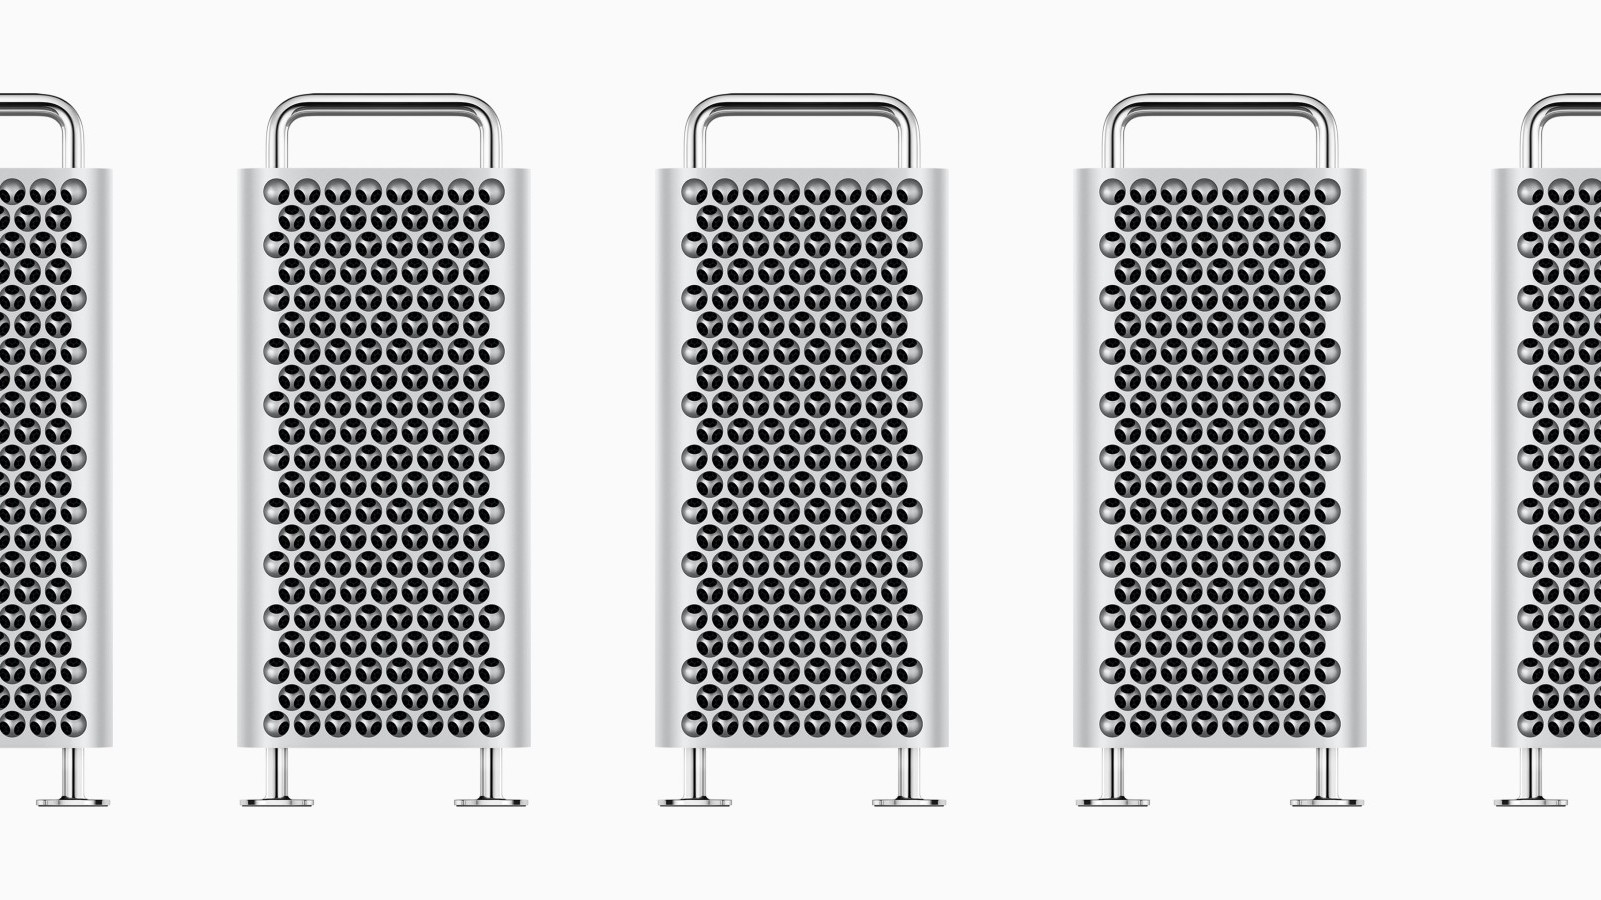 The internet can't believe Apple launched a $5999 cheese grater